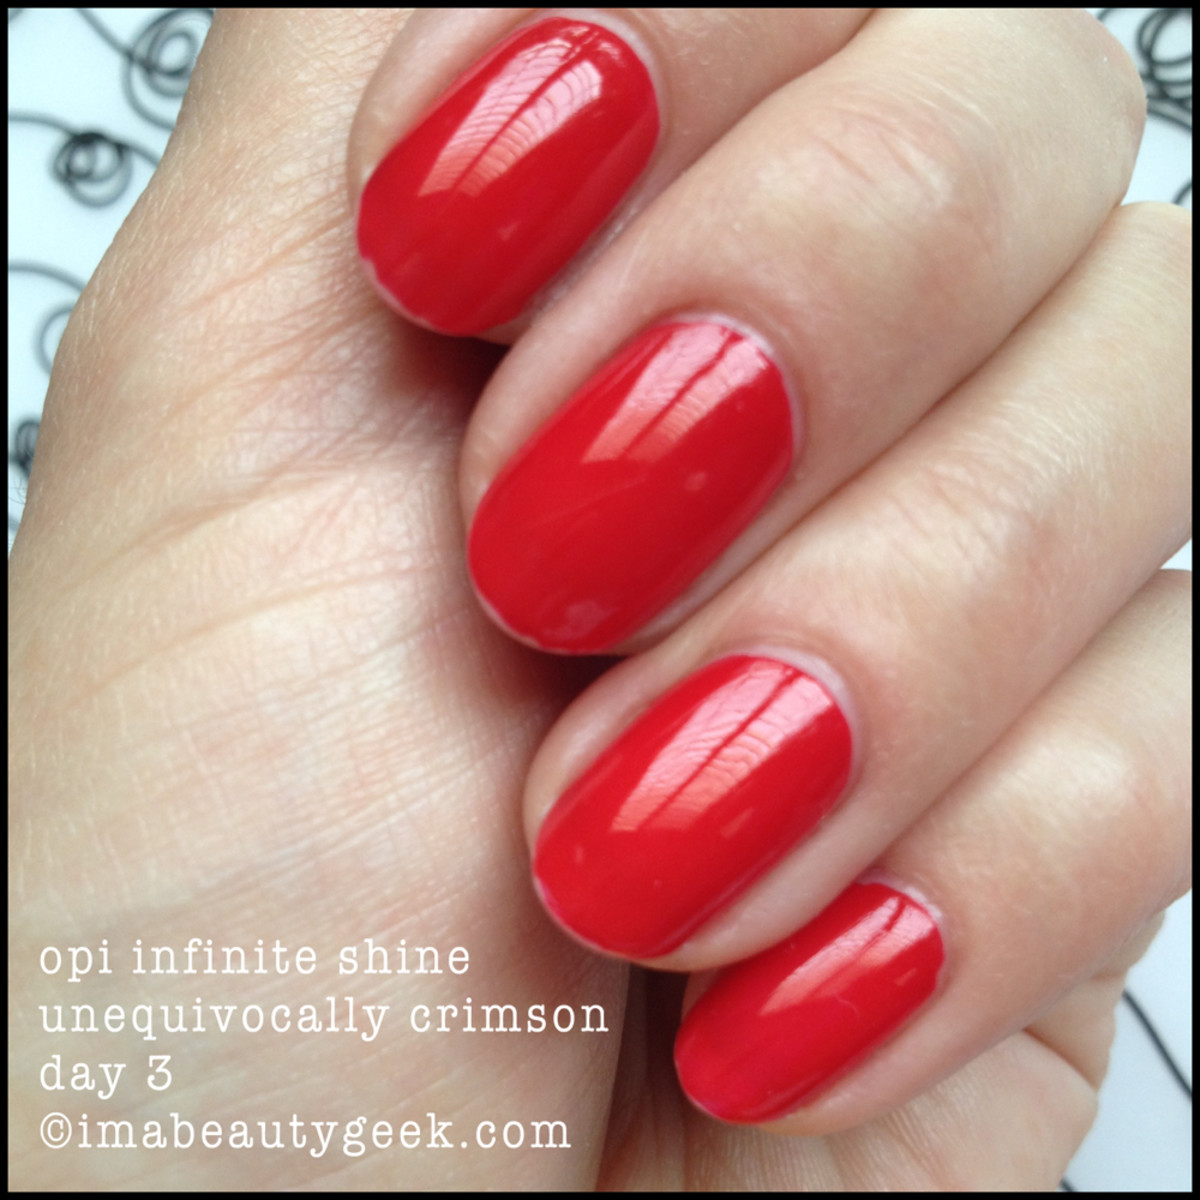 OPI Infinite Shine Review Unequivocally Crimson